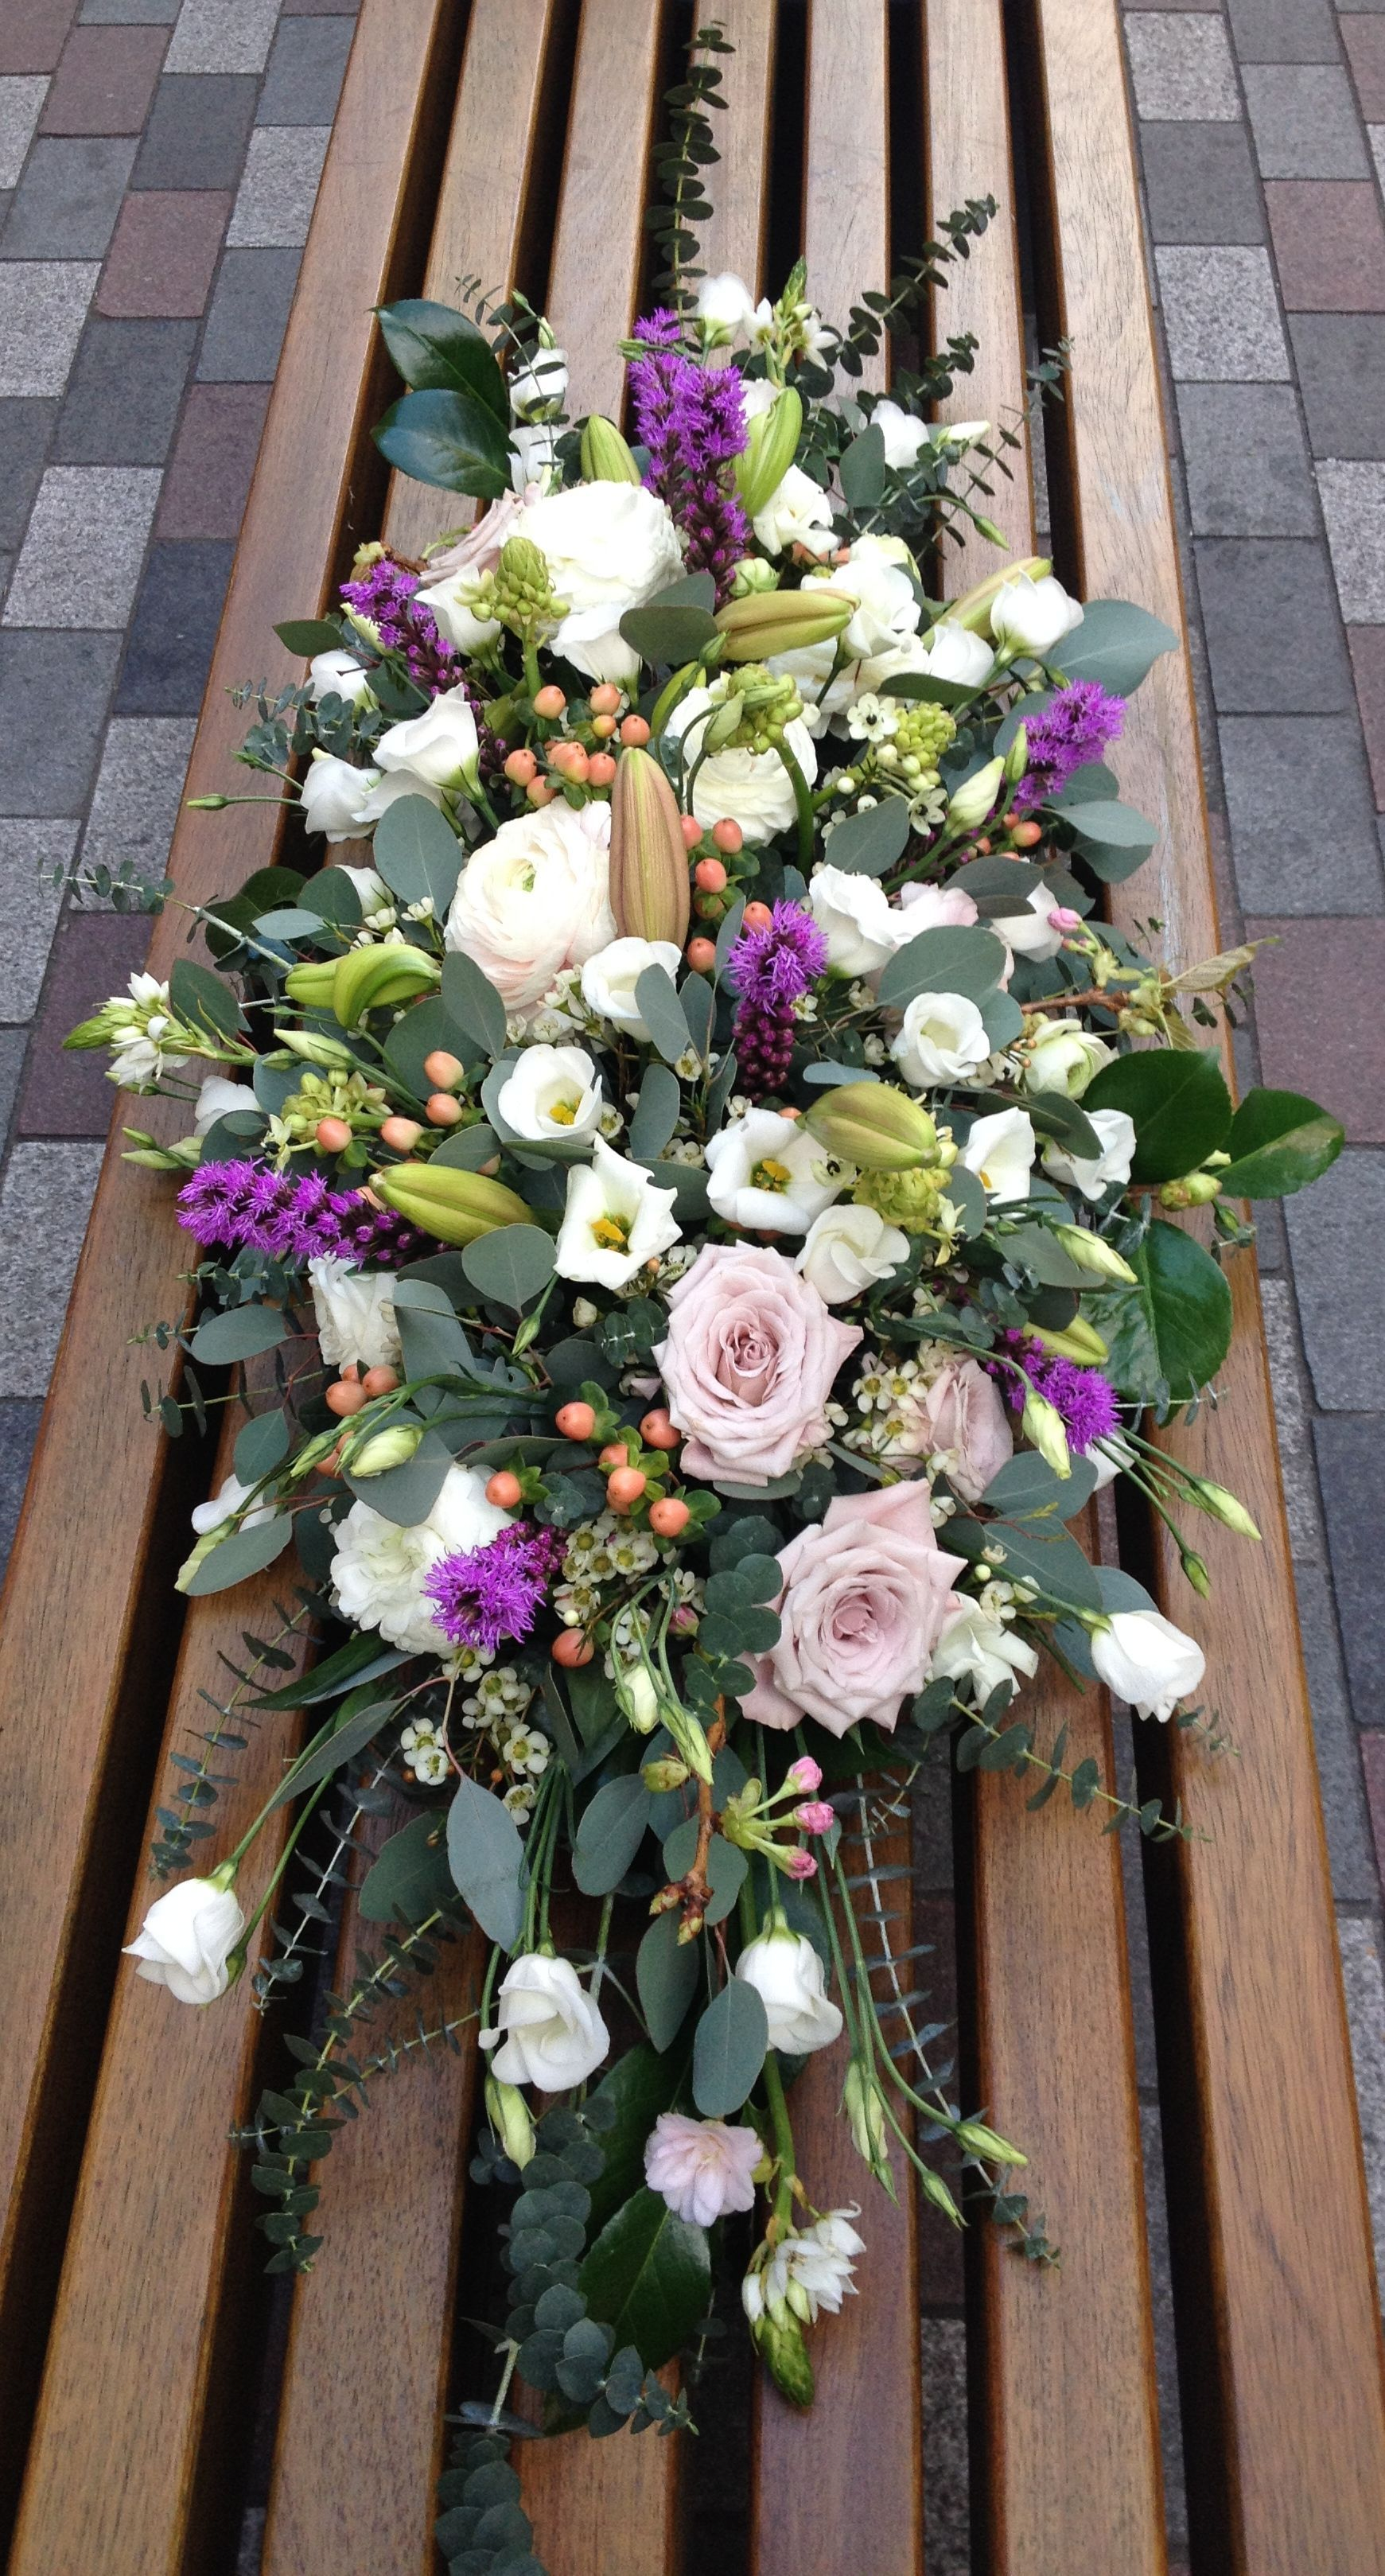 21 funeral flowers from interflora funeral attire funeral flowers 21 funeral flowers from interflora izmirmasajfo